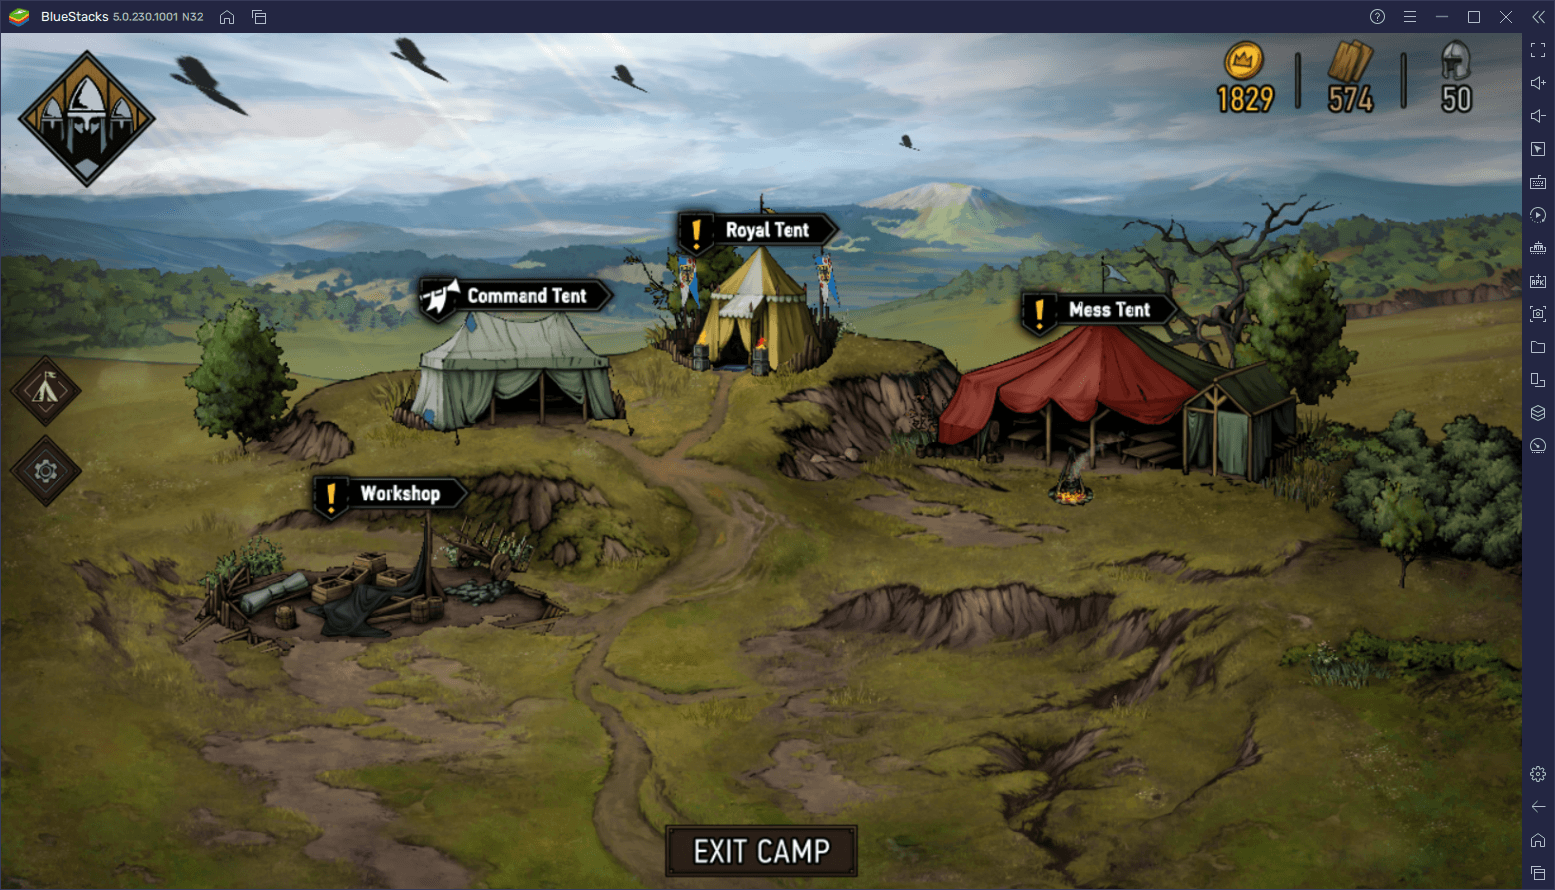 Beginner's Guide for The Witcher Tales: Thronebreaker – Acquainting Yourself With the Gameplay and UI